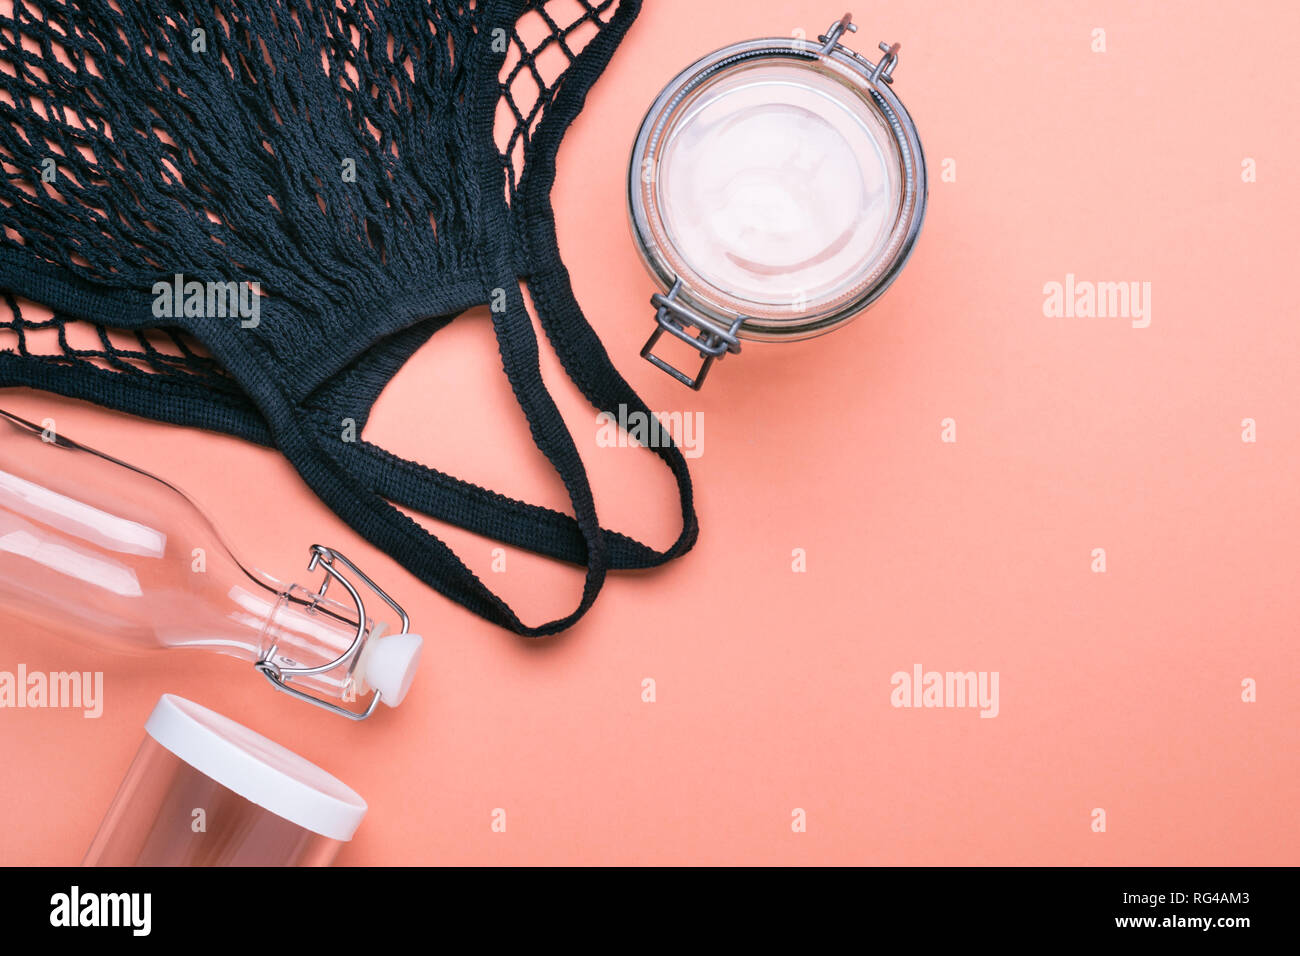 Set of jars and bag for zero waste shopping. - Stock Image